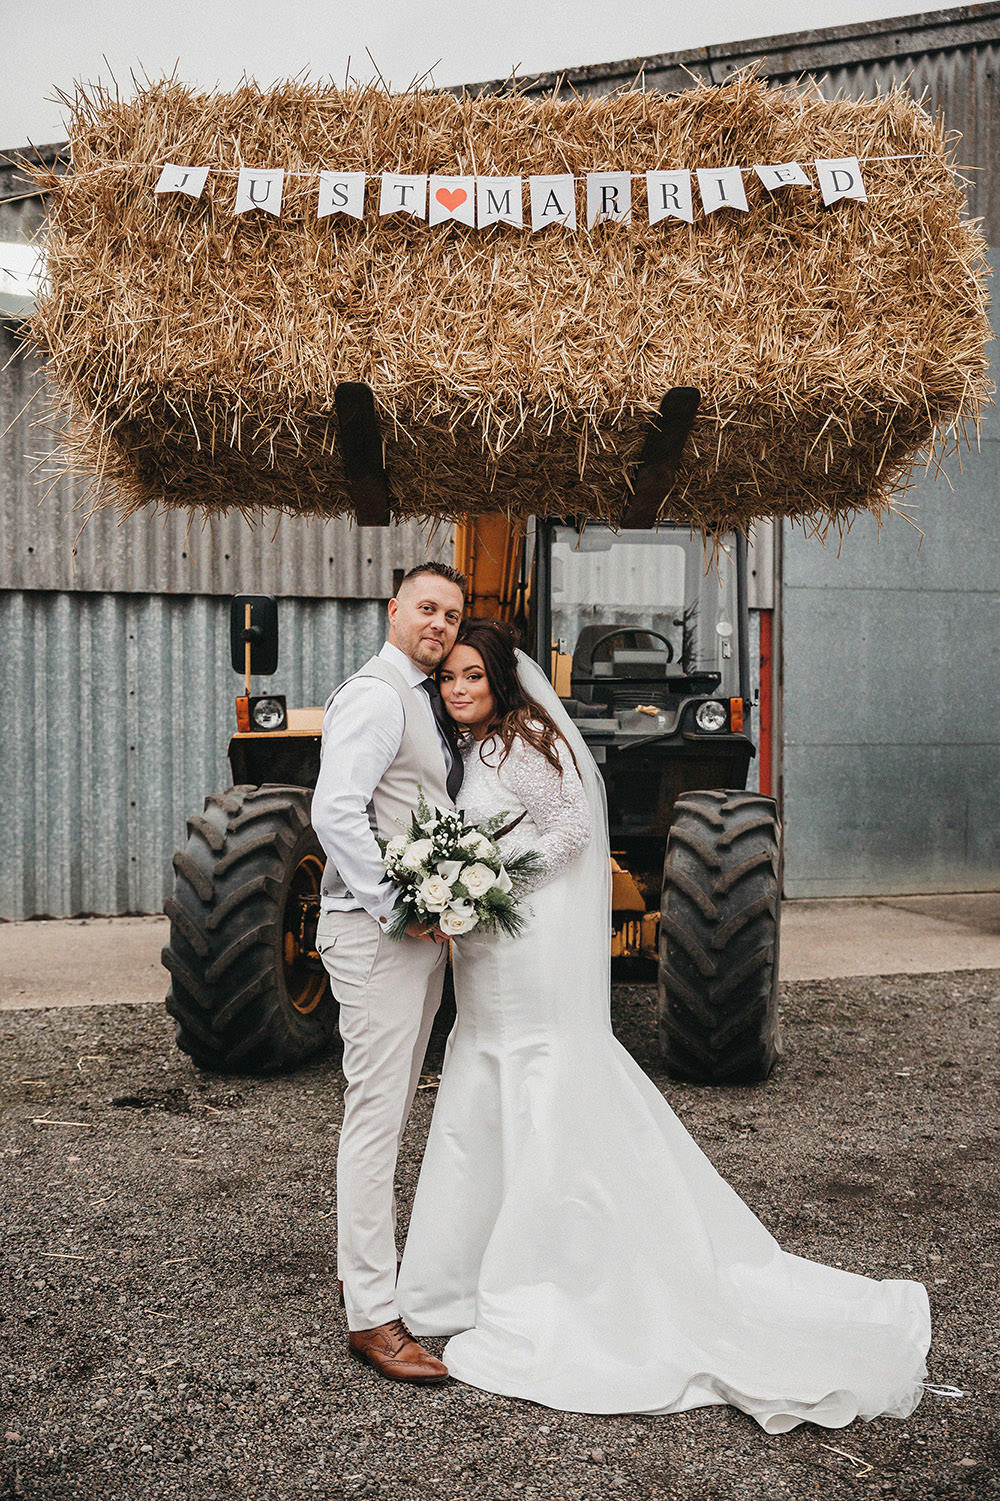 Bride Bridal Separates Sparkly Long Sleeve Fish Tail Button Back Groom Cream Waistcoat Suit Veil White Rose Snowdrops Bouquet Big Barn Wedding Ashley The Vedrines Photography